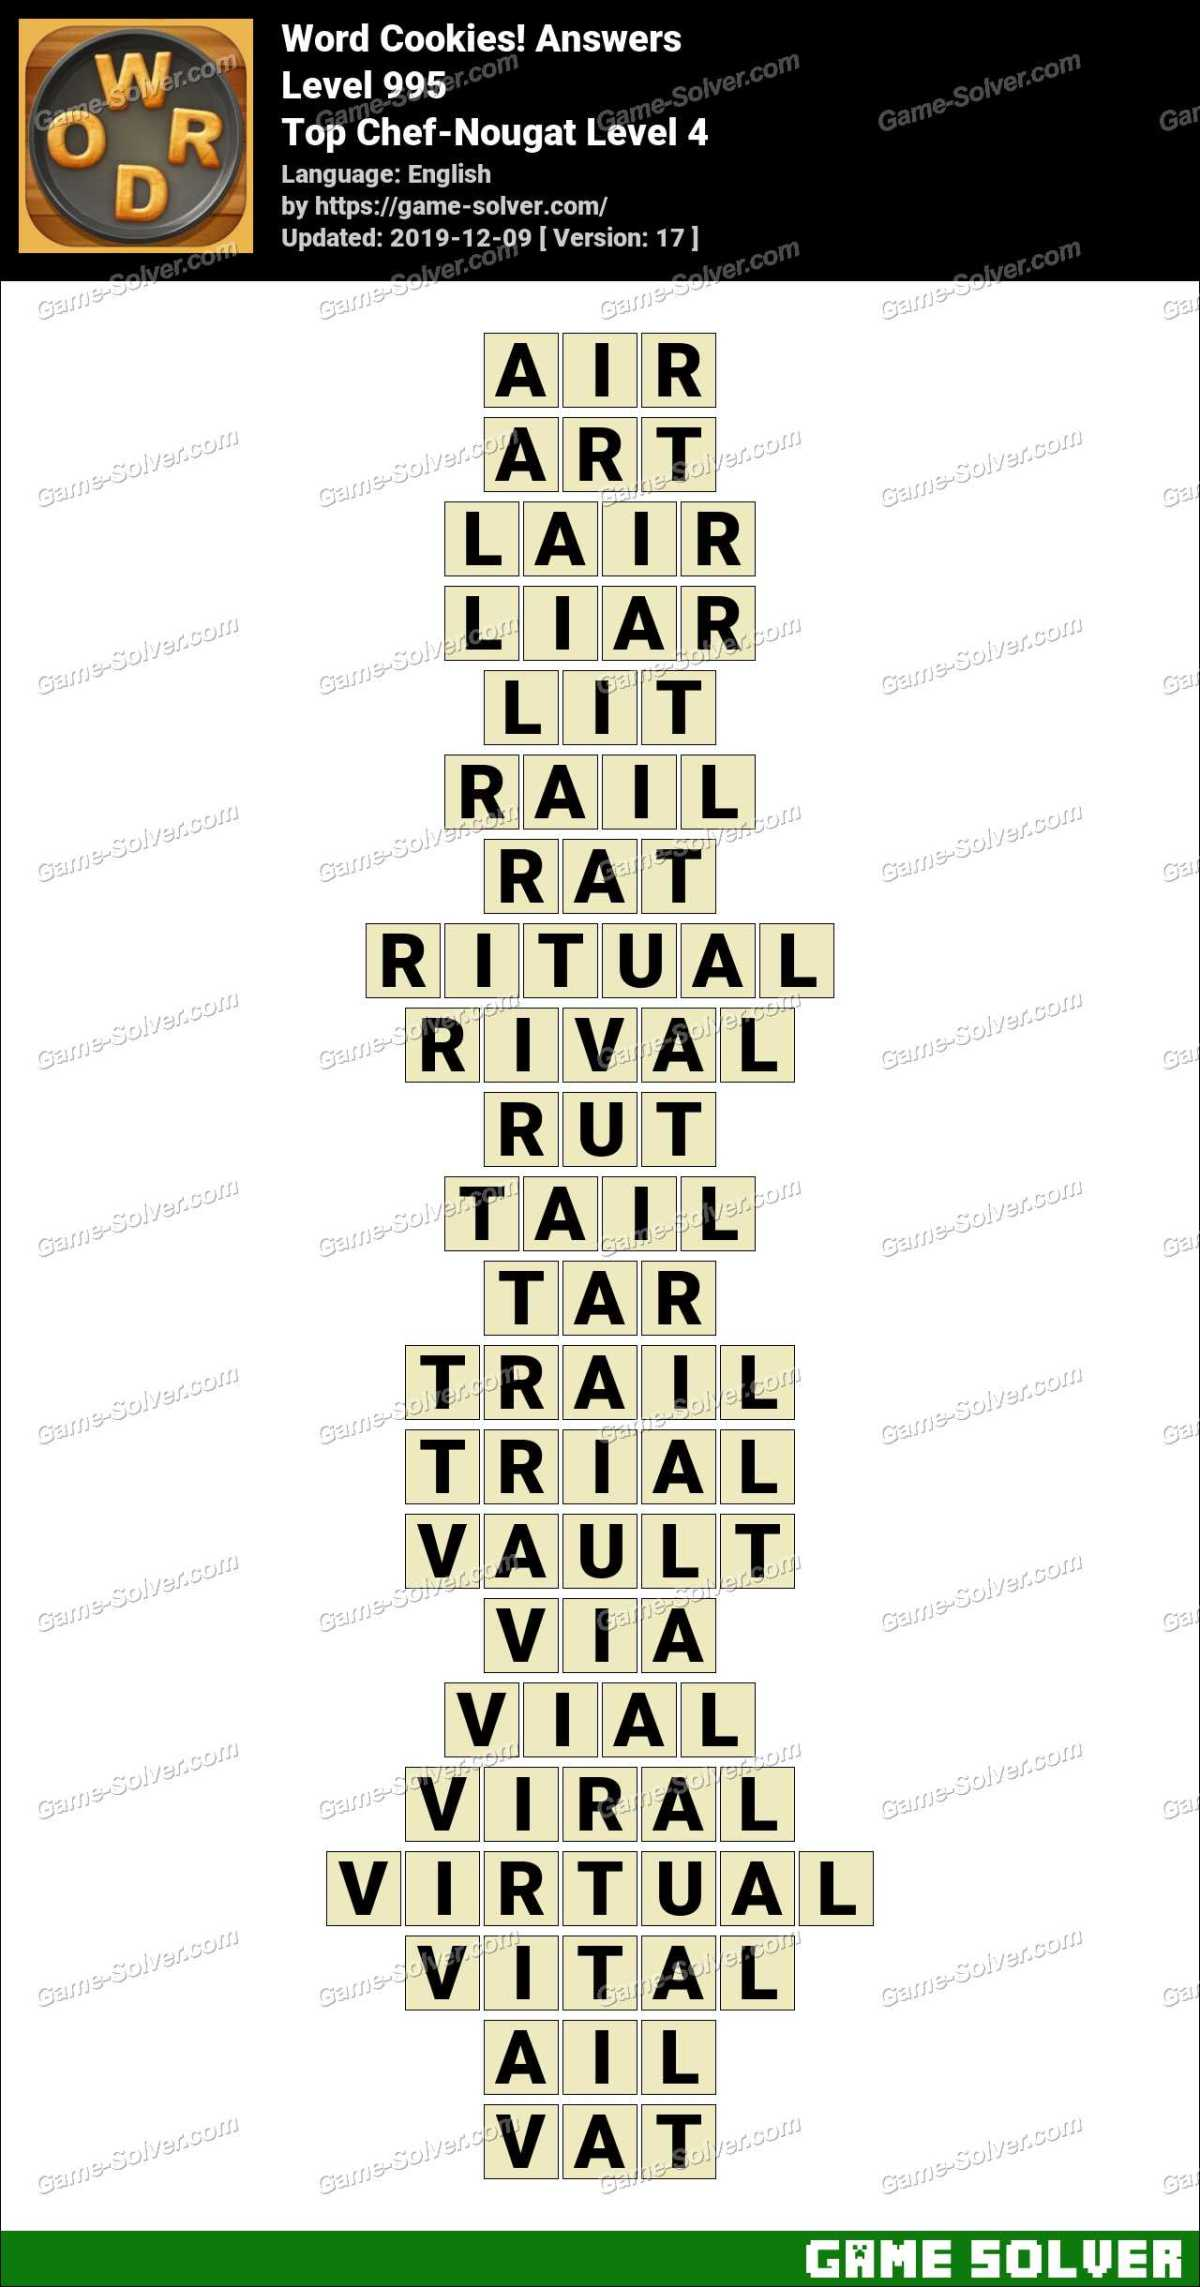 Word Cookies Top Chef-Nougat Level 4 Answers